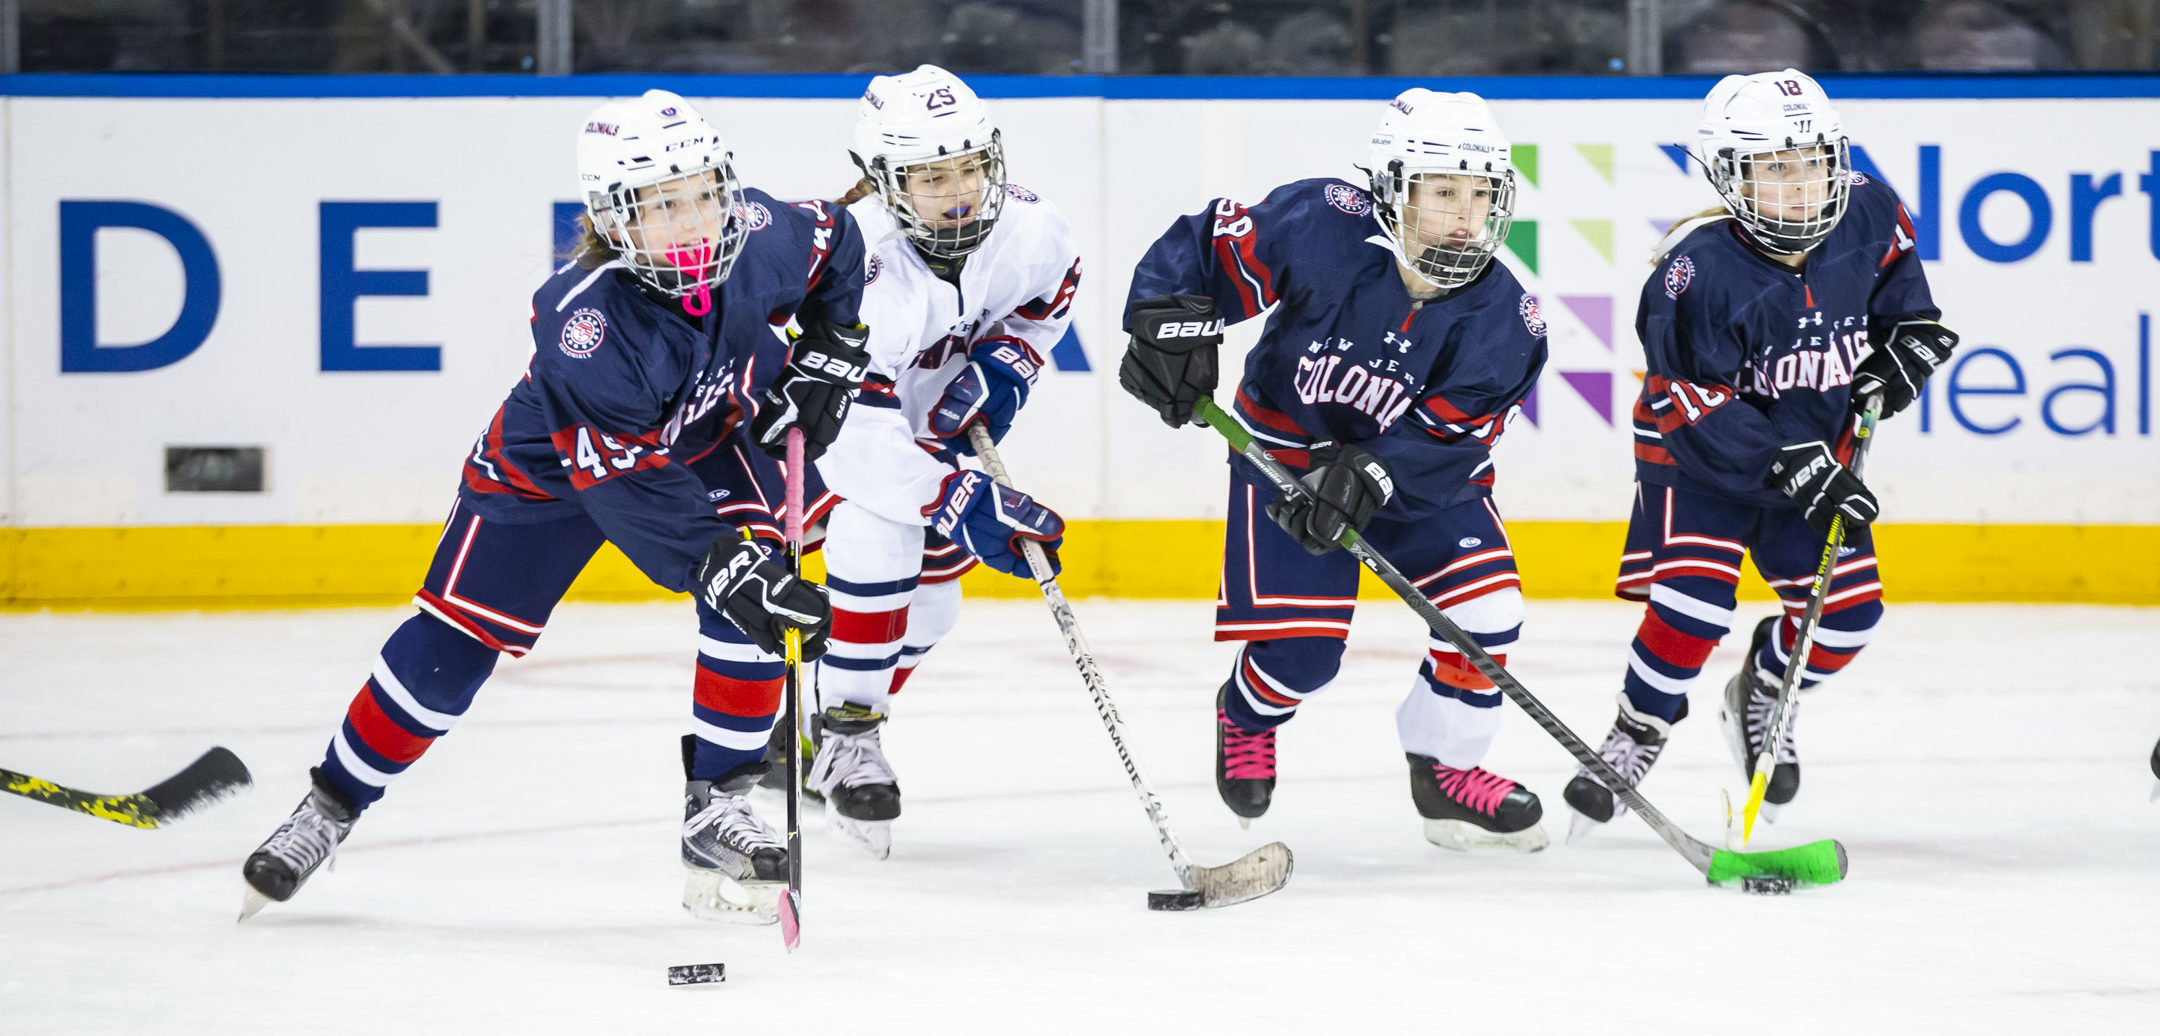 January 9, 2020: The New York Rangers host a Jr Rangers clinic for girls on the ice at Madison Square Garden with Amanda Kessel.